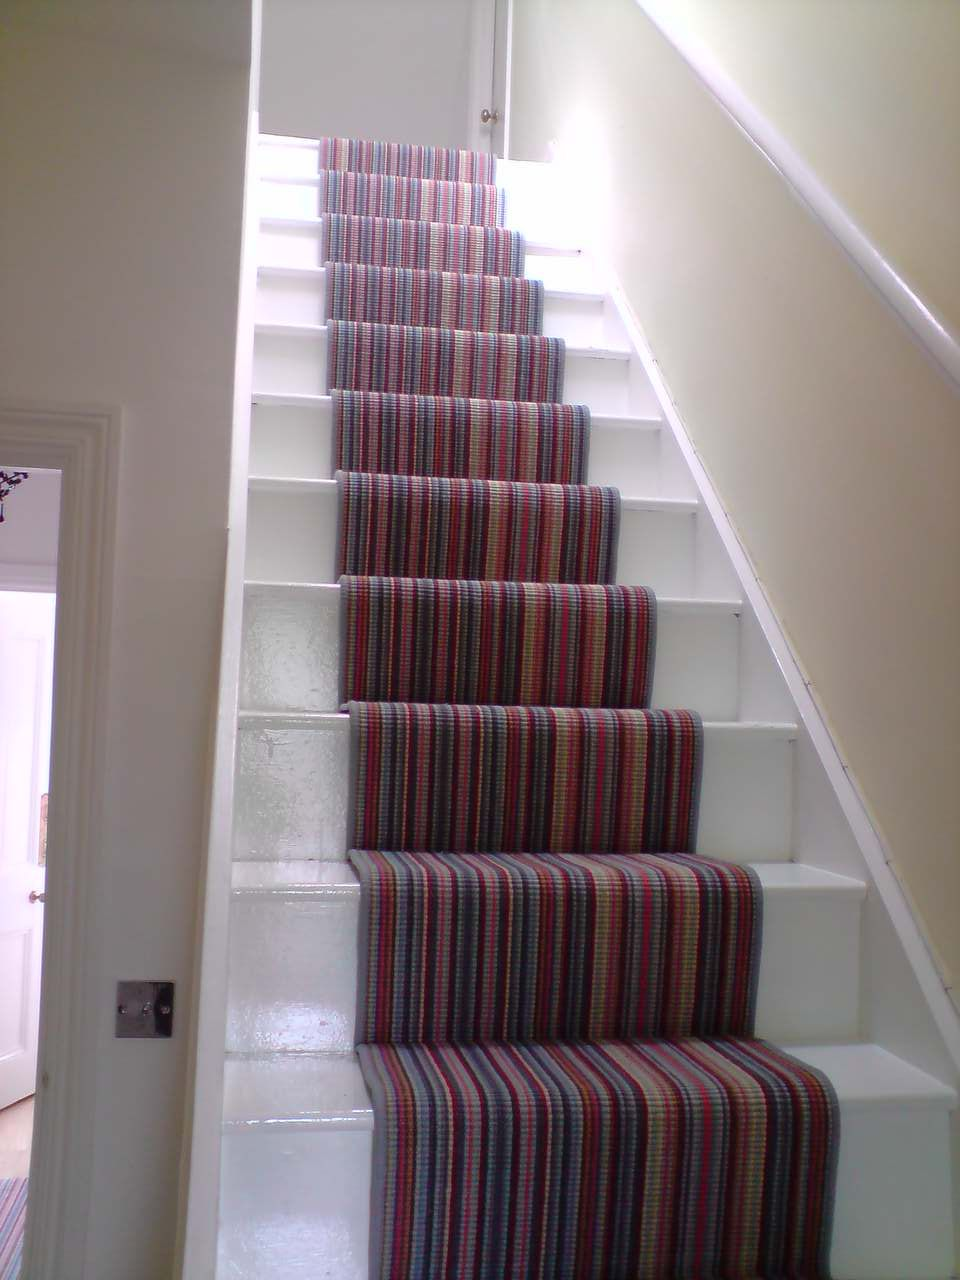 Best Patterned Stair Runner Image Courtesy Of Nikkibs Com 400 x 300